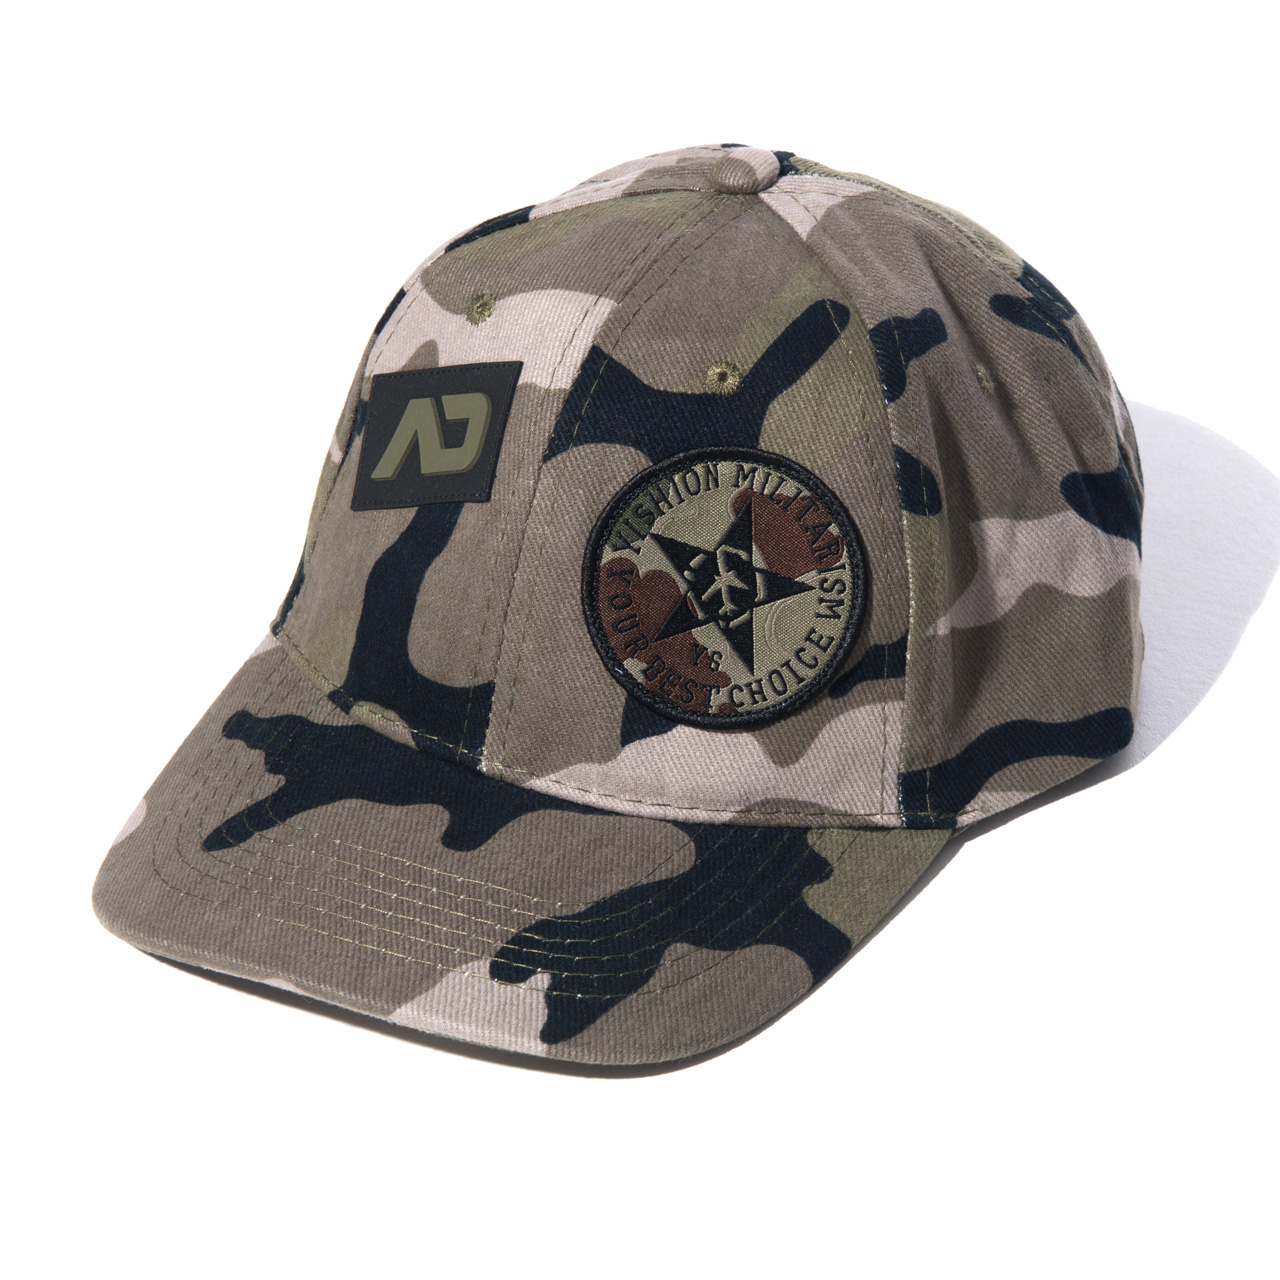 ARMY CAP CAMOUFLAGE 17